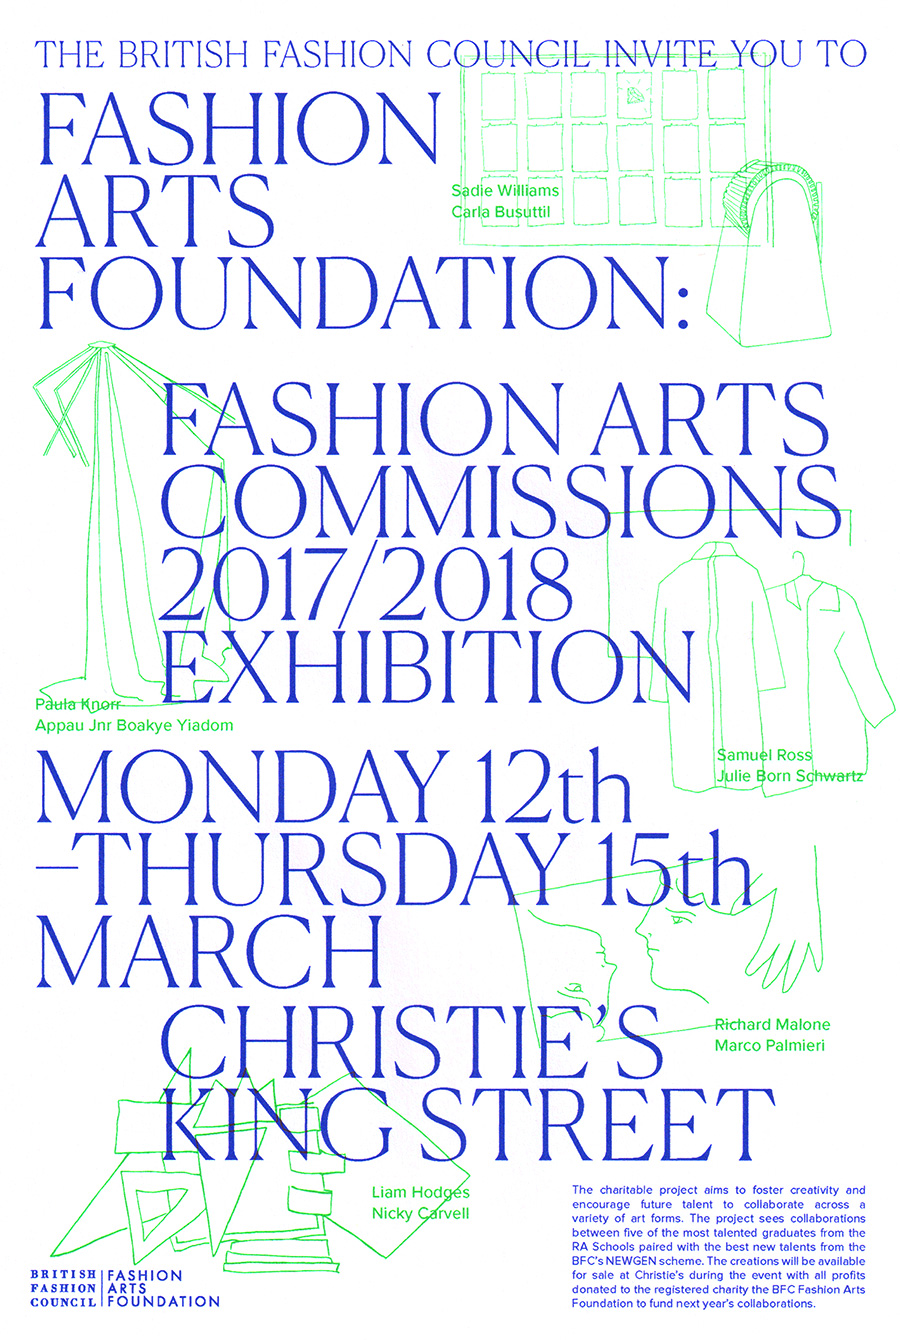 FAF-Invite-Exhibition.jpg